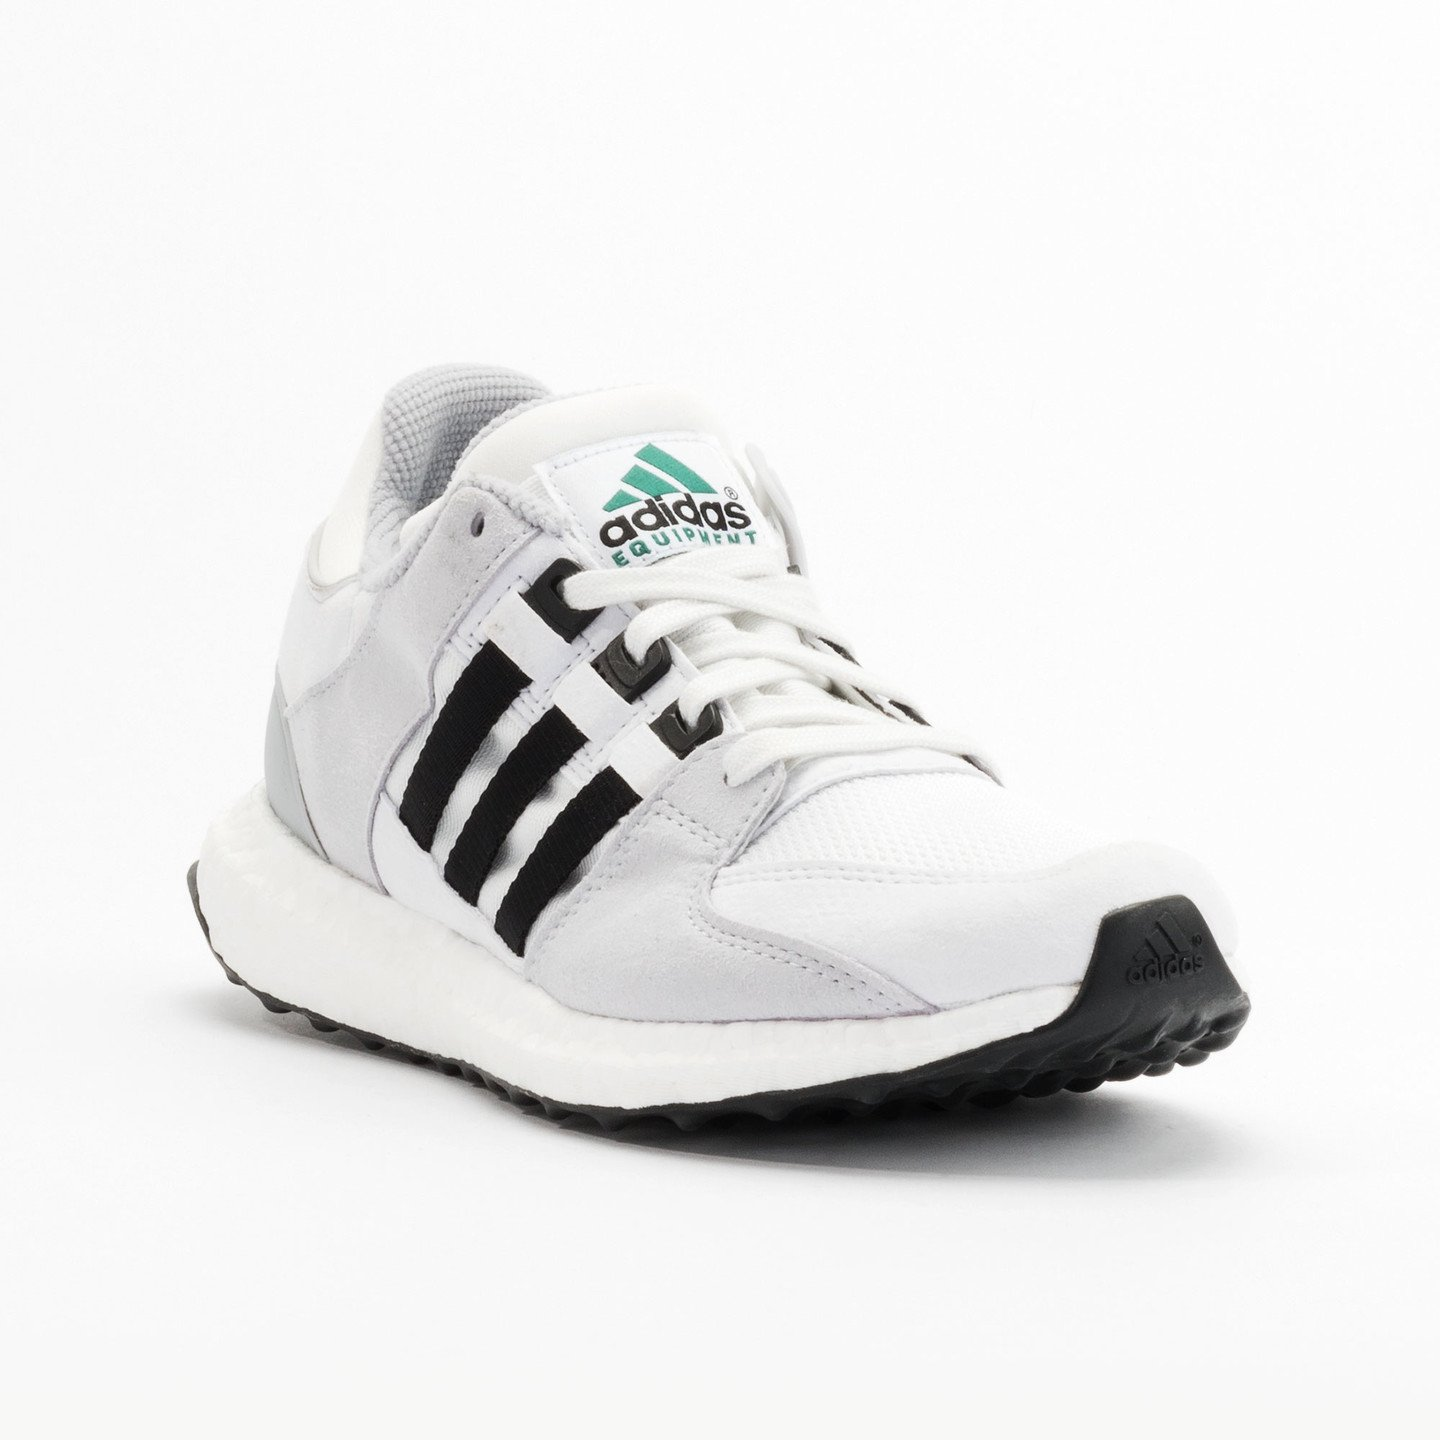 Adidas Equipment Support 93/16 Vintage White / Core Black / Sub Green S79112-44.66